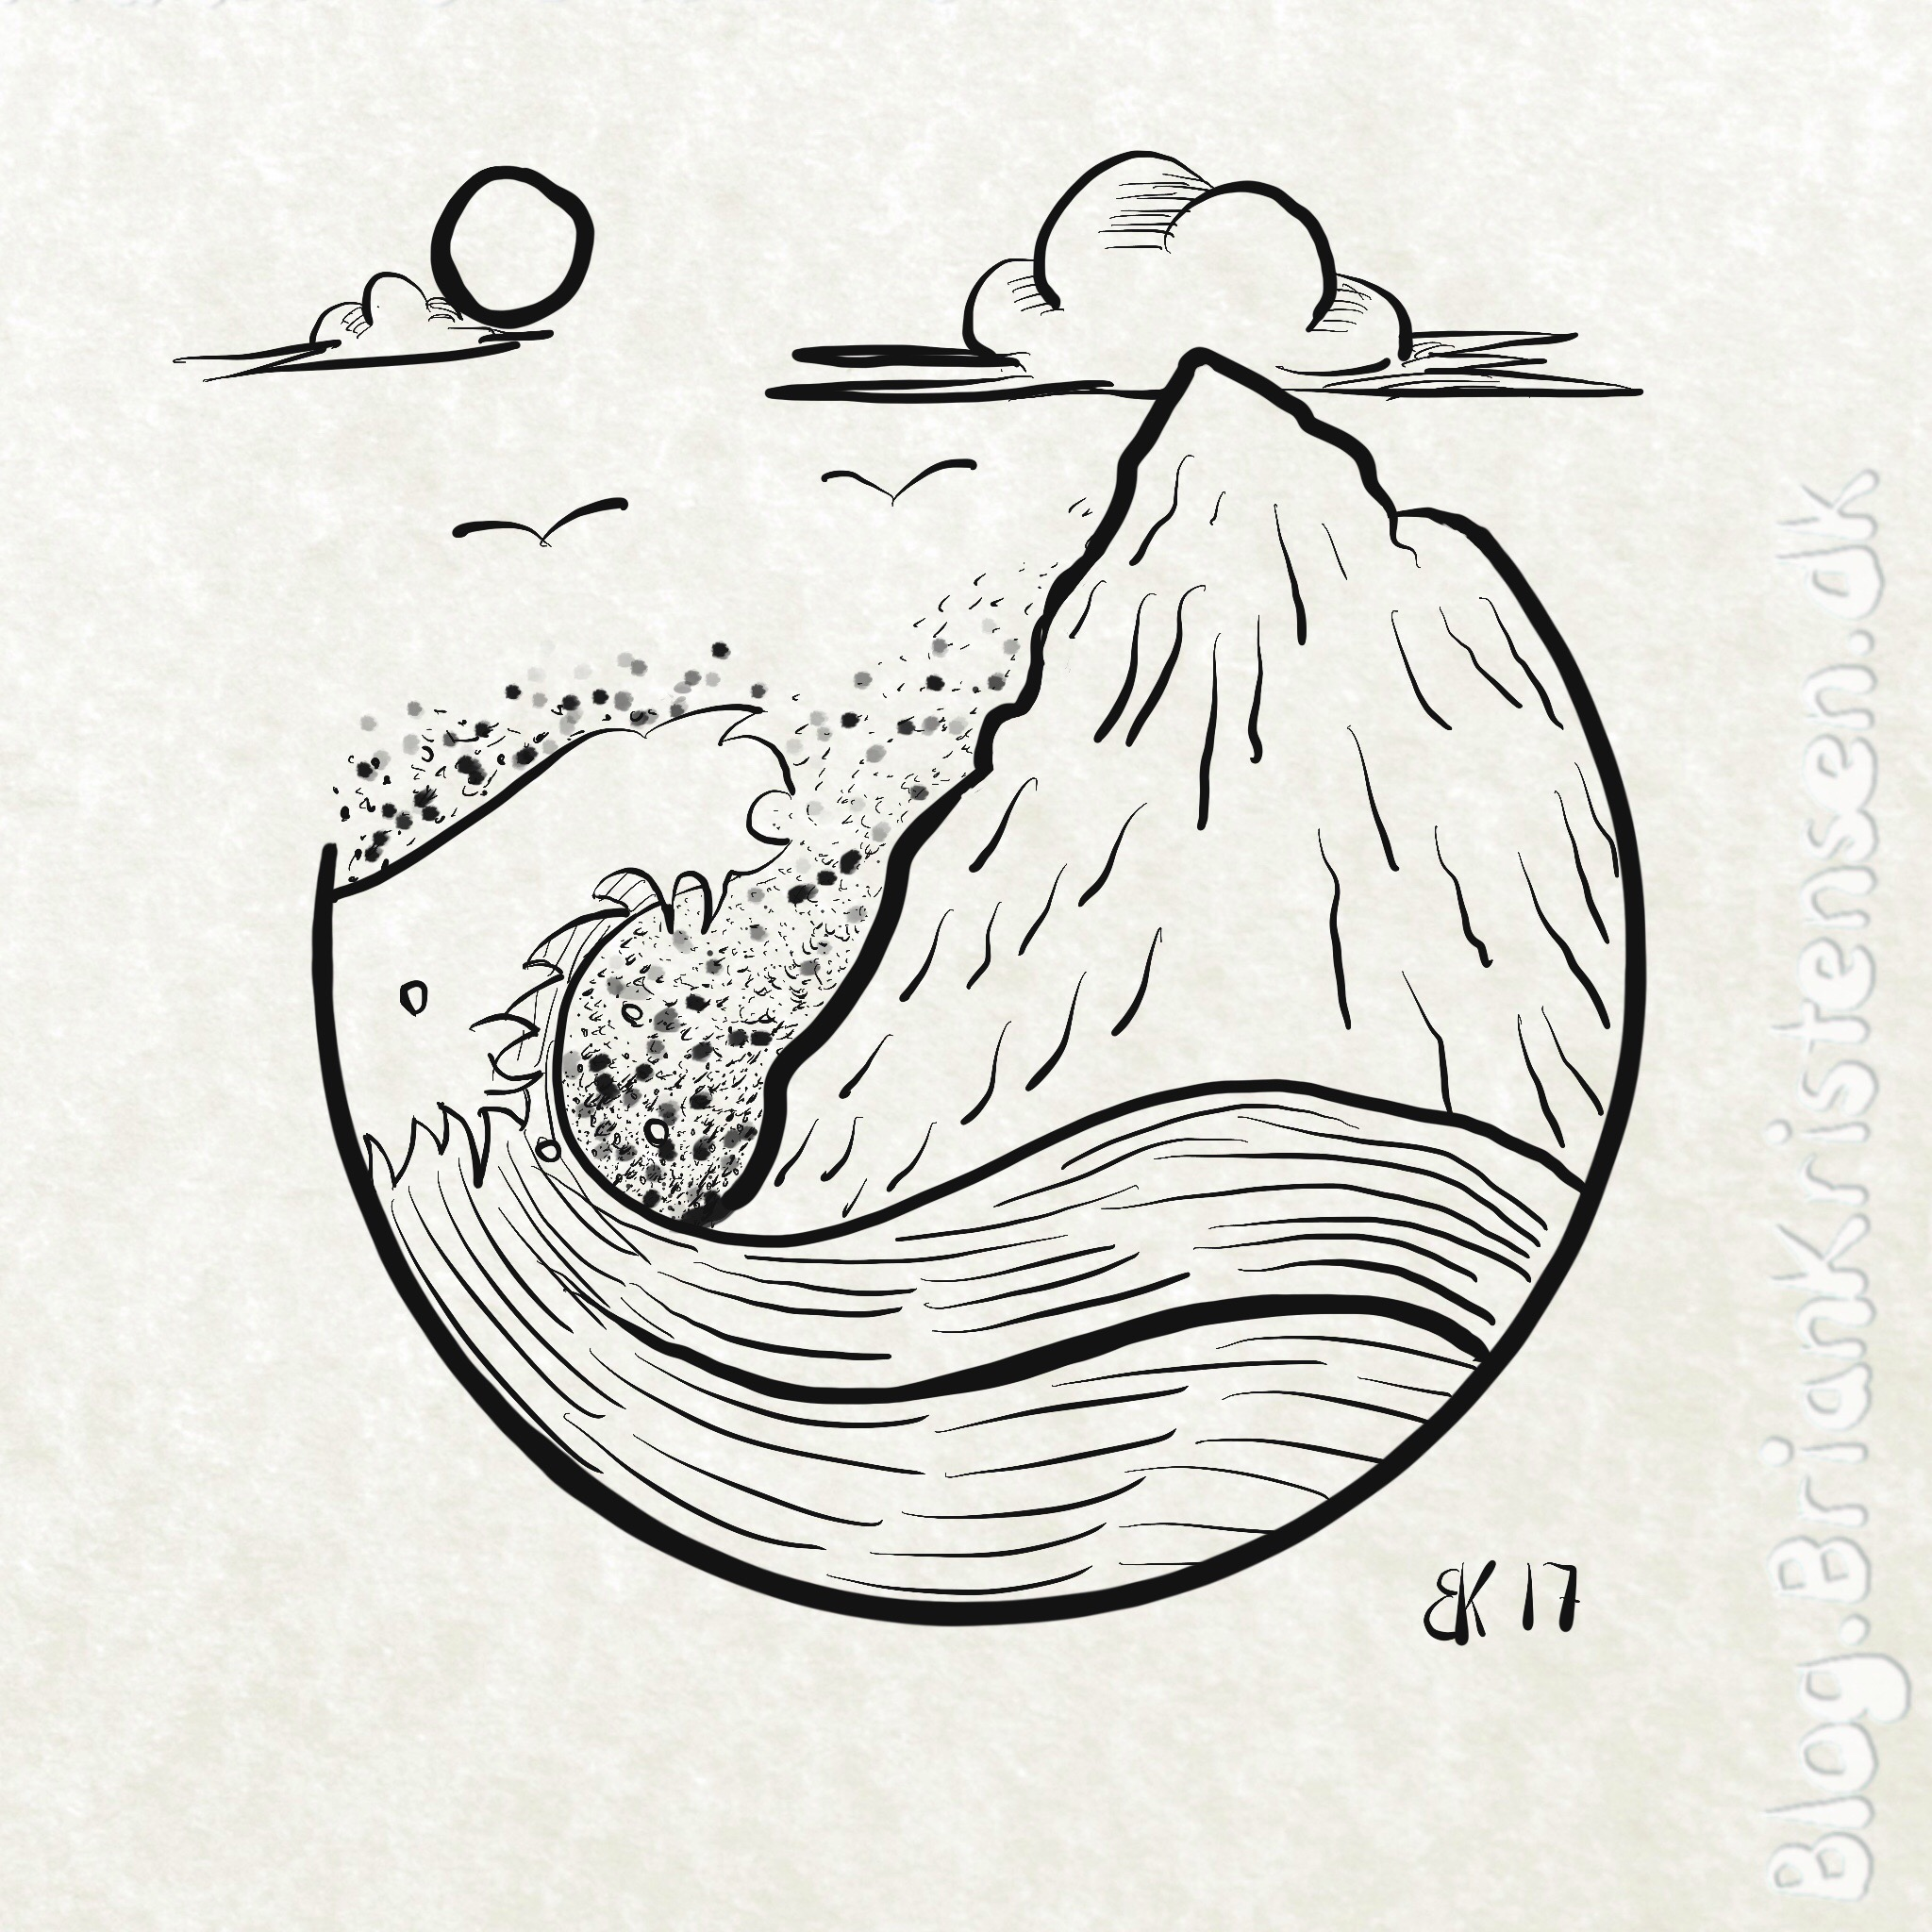 2048x2048 Drawing A Minimalistic Ocean Scene My Sketches